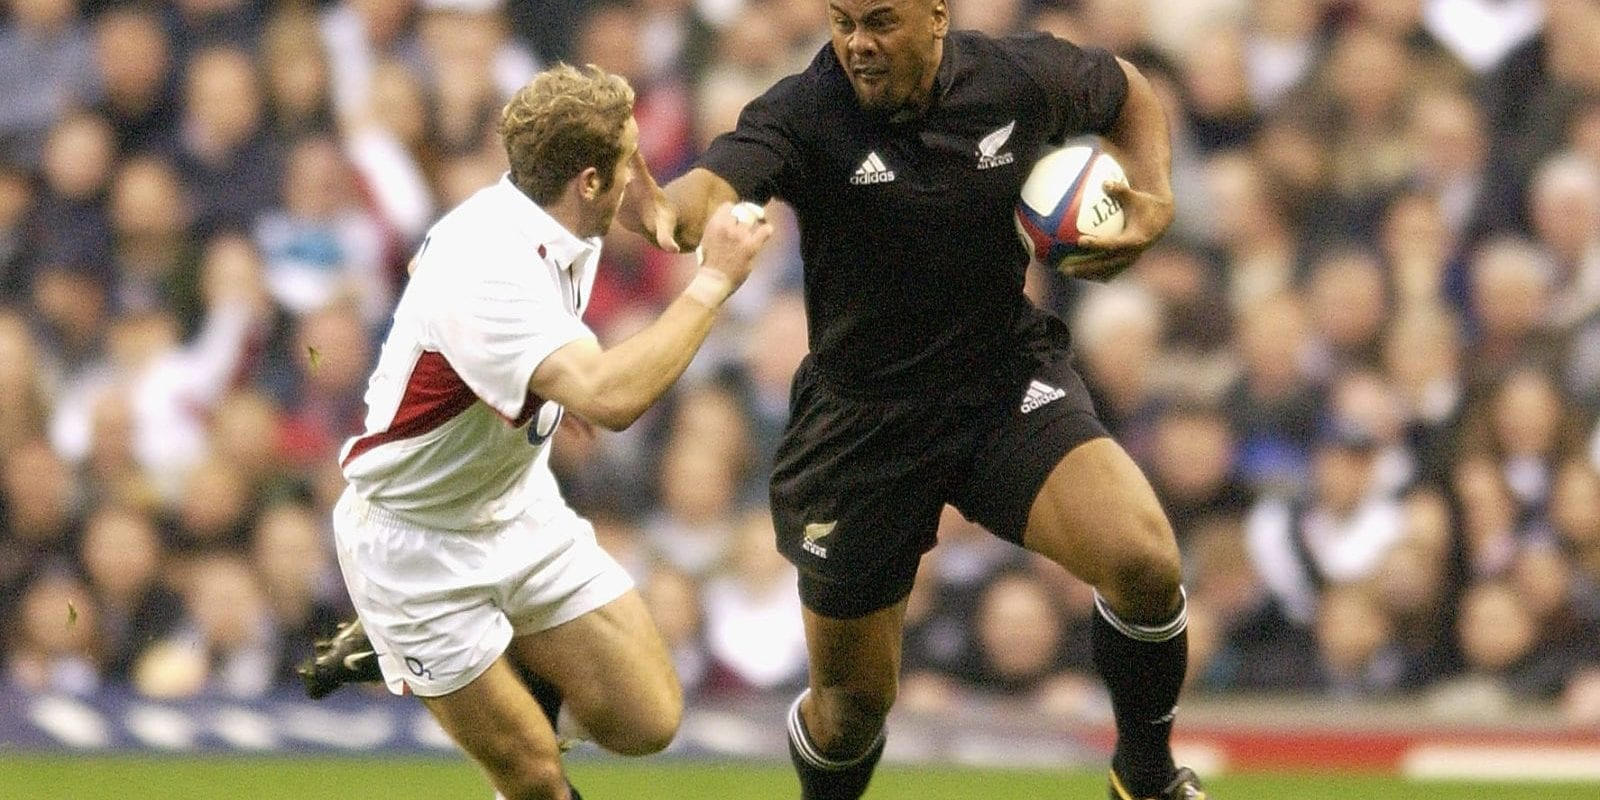 Rugby field dimensions vs football betting nhl betting tips flashback heart